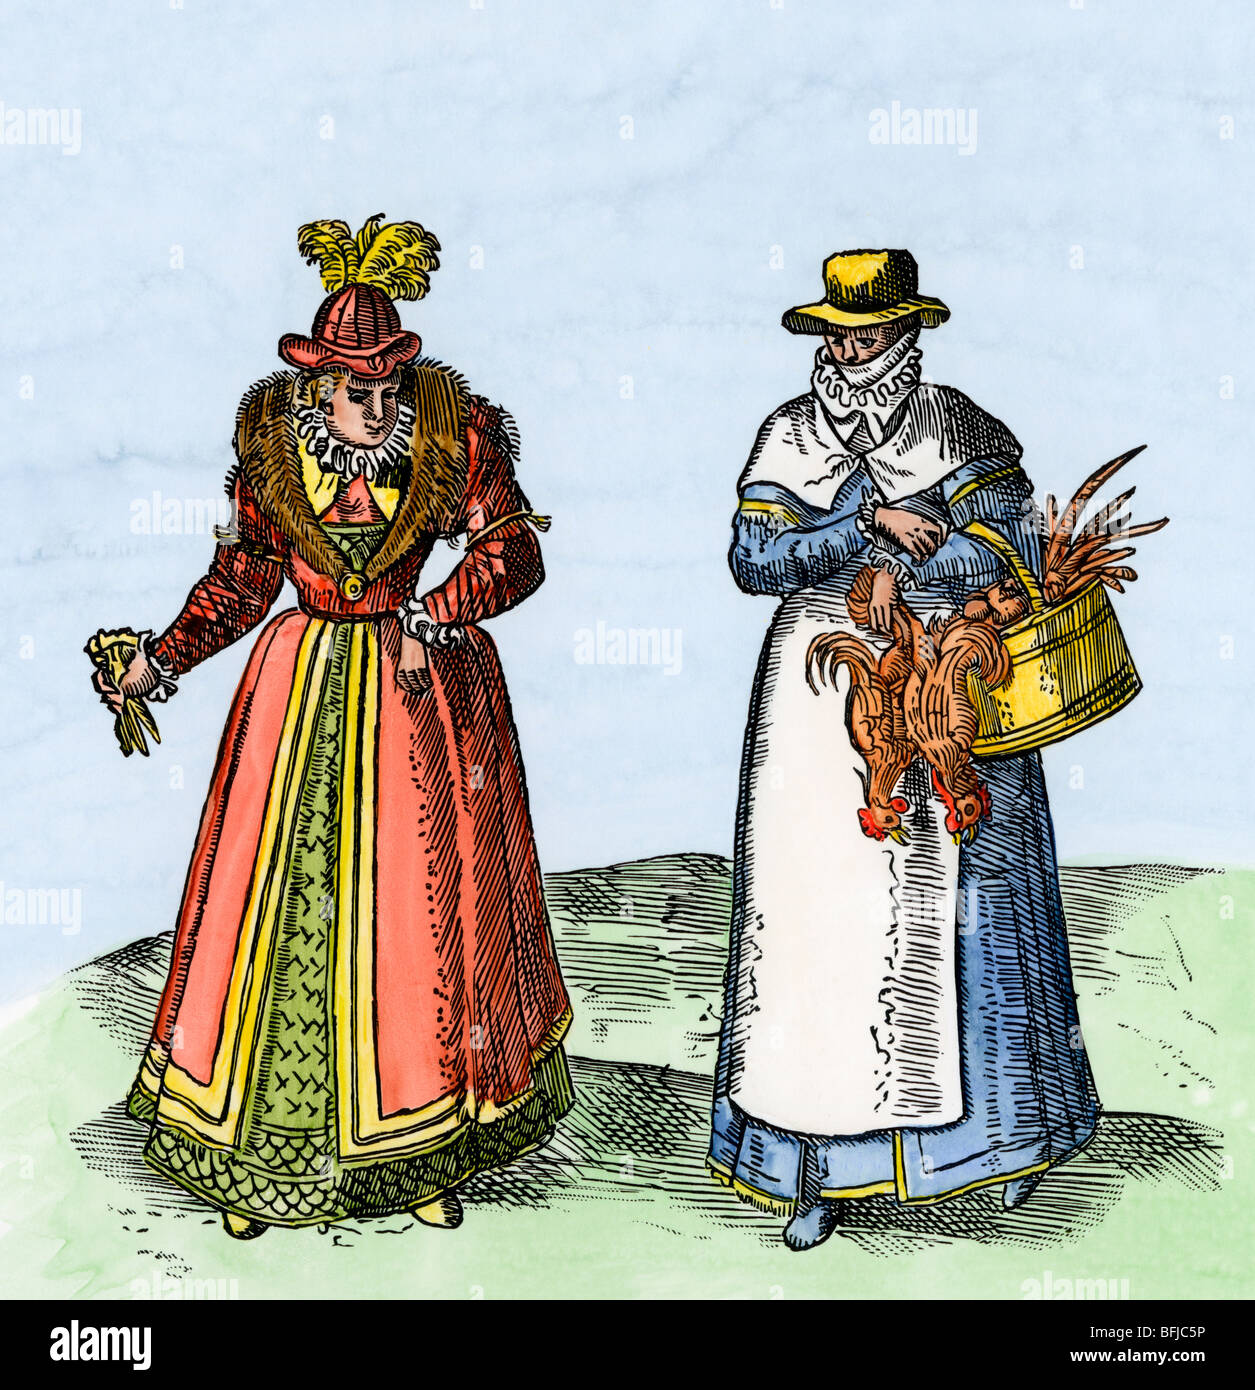 Lady of the court and a country woman during the reign of Elizabeth I, 1572. Hand-colored woodcut - Stock Image